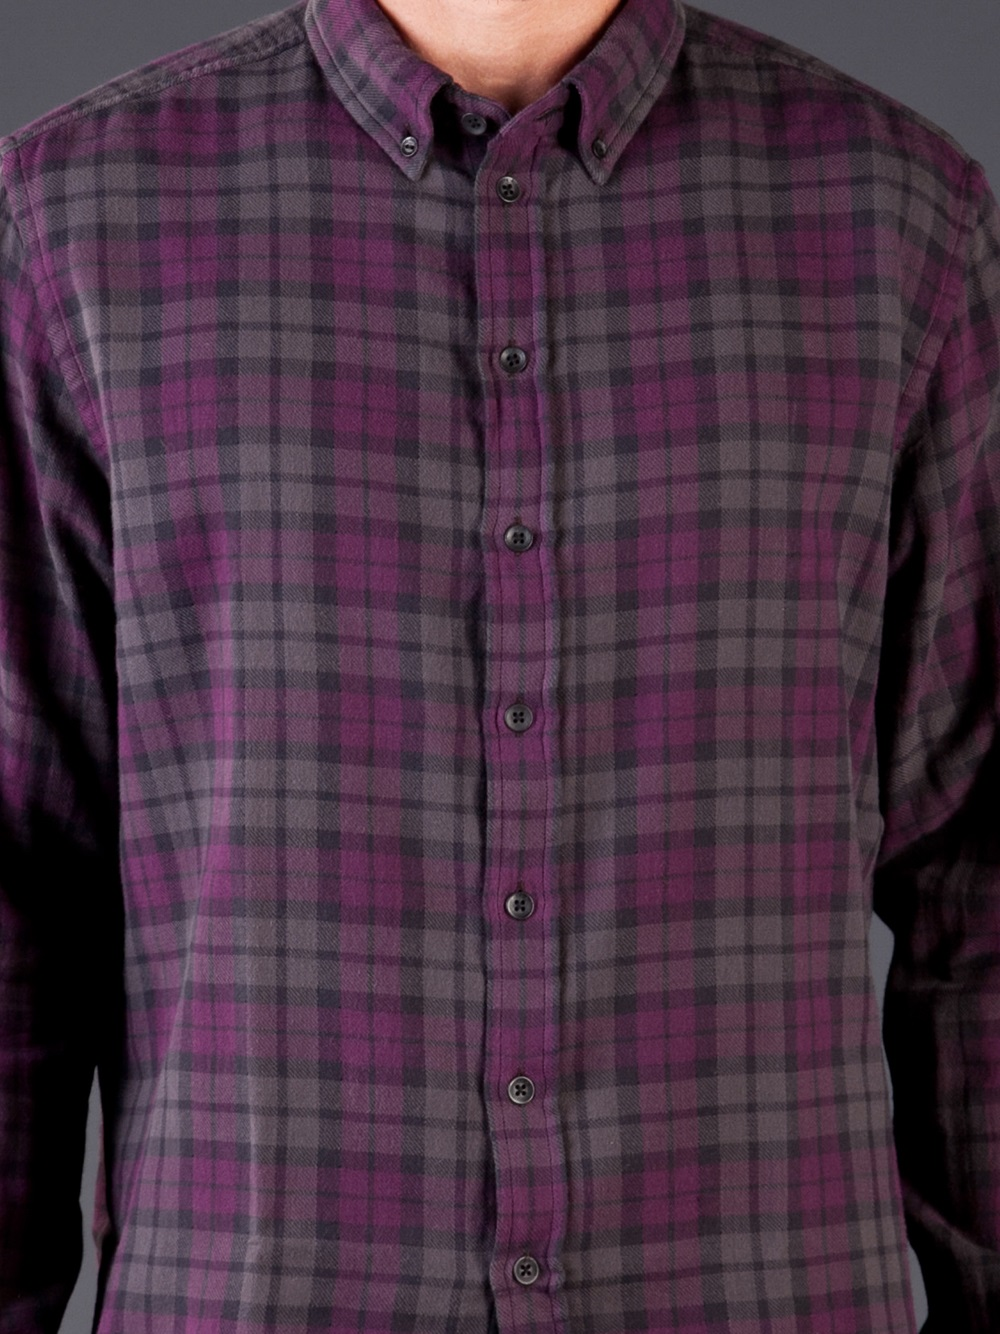 Mens Pink Plaid Flannel Shirt Edge Engineering And Consulting Limited